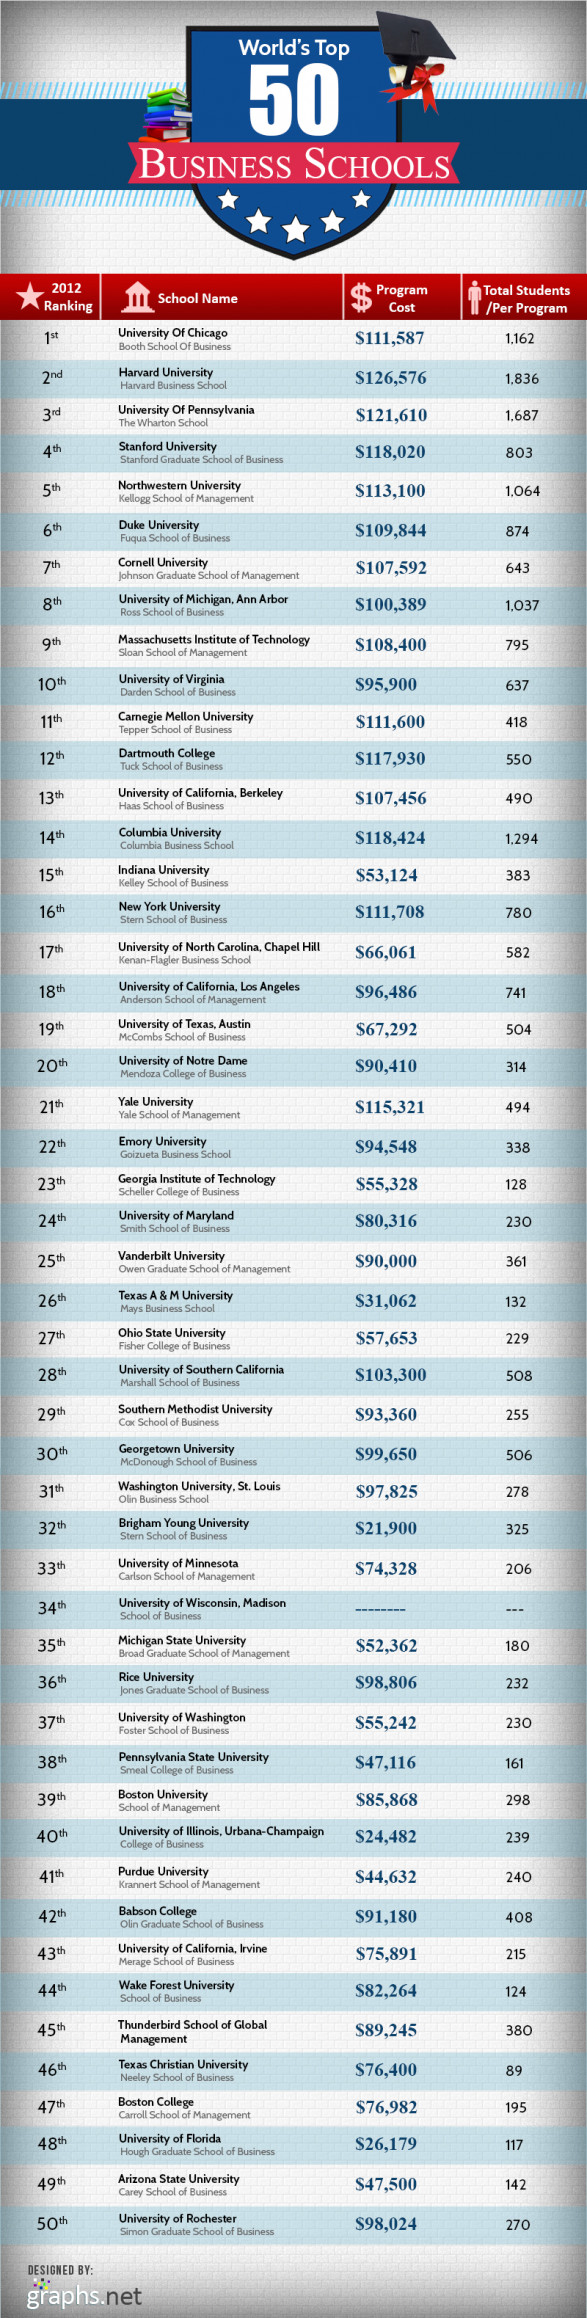 List of world top 50 business schools